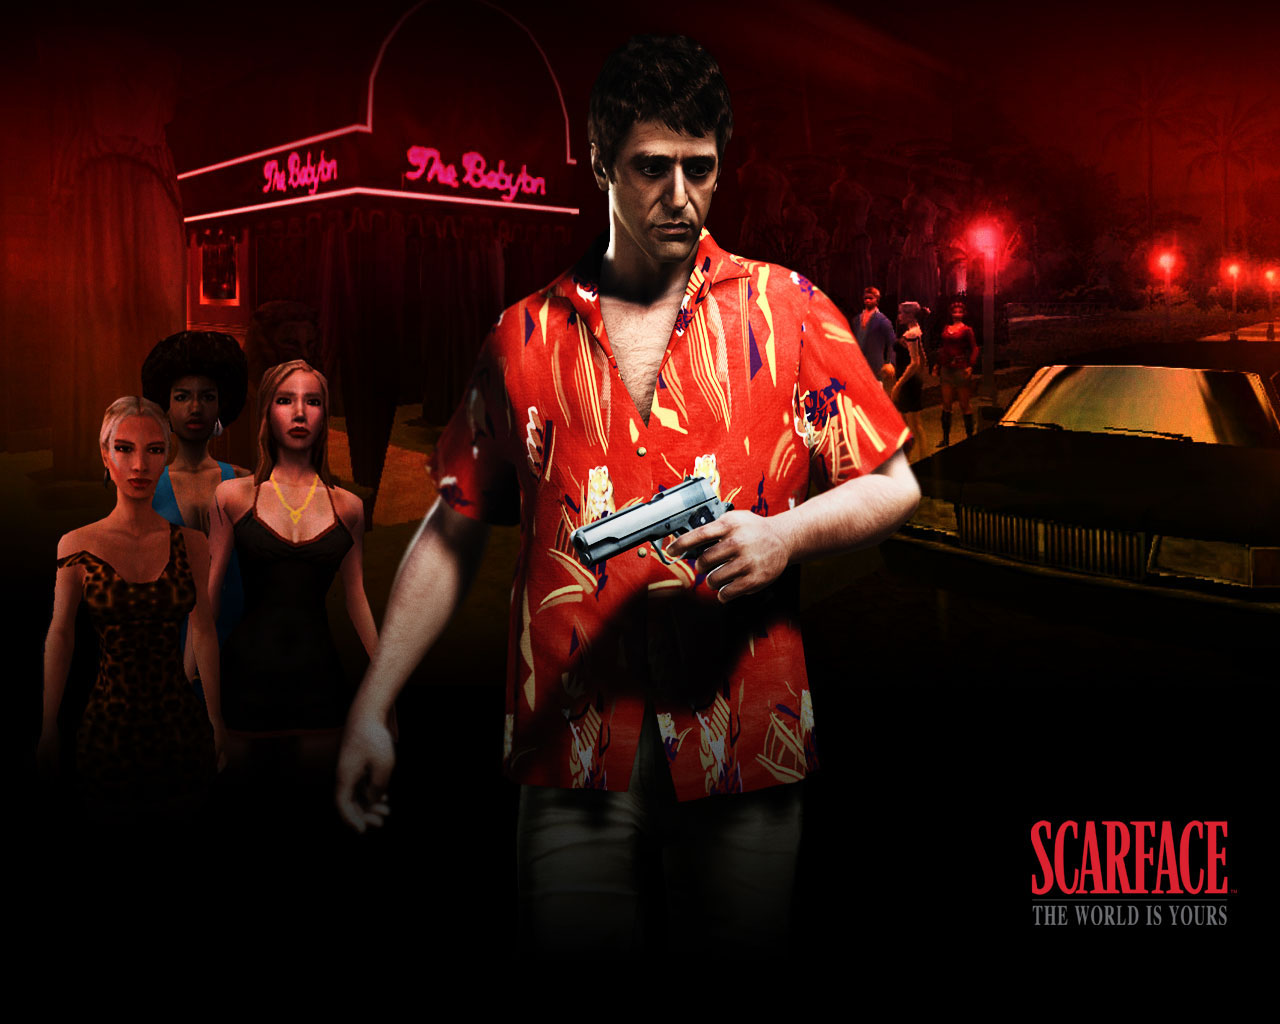 Scarface hd wallpaper wallpapersafari - The world is yours wallpaper ...